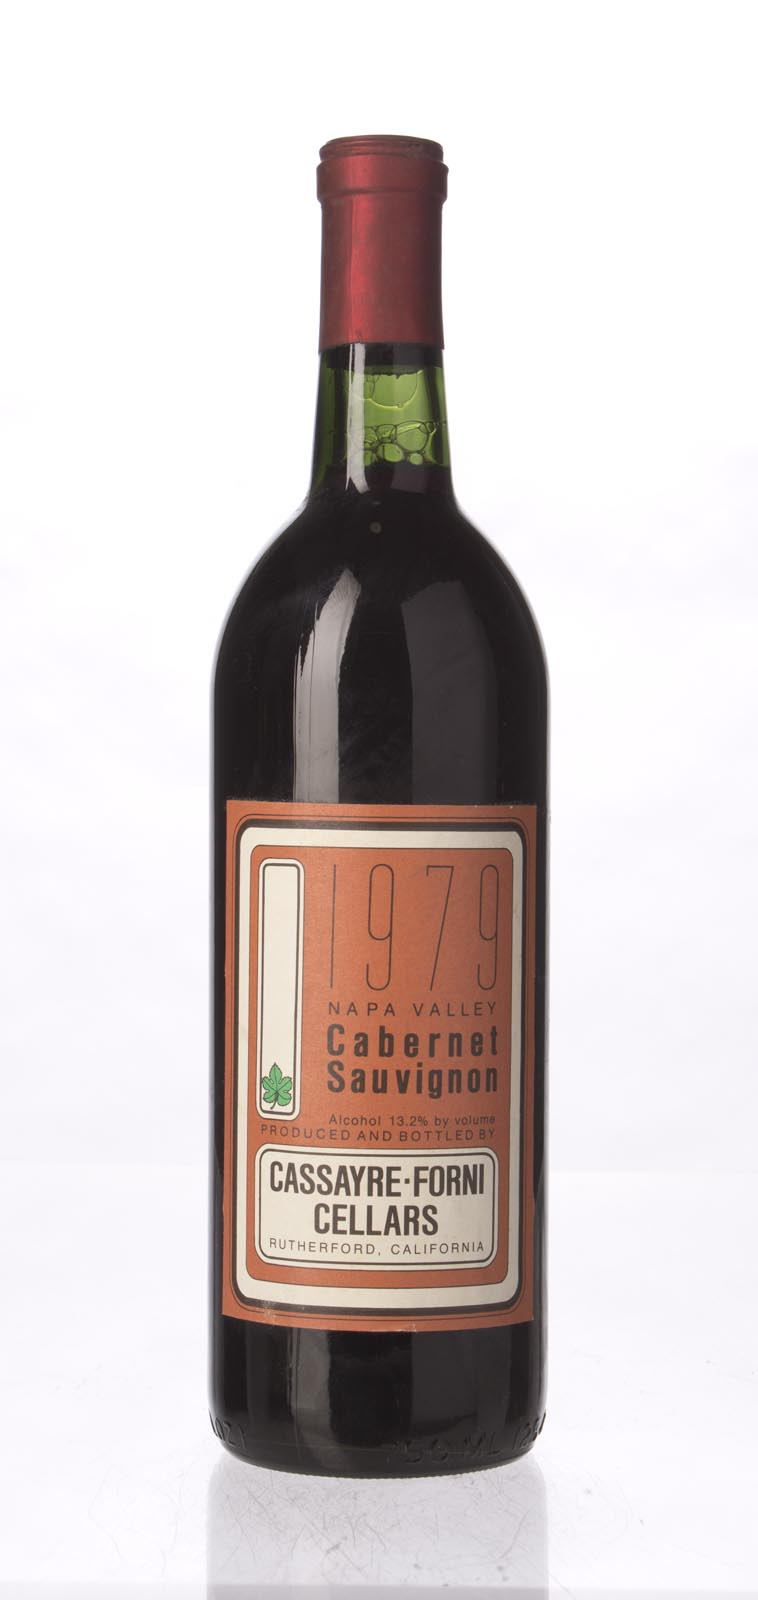 Cassayre Forni Cabernet Sauvignon Napa Valley 1979, 750ml () from The BPW - Merchants of rare and fine wines.